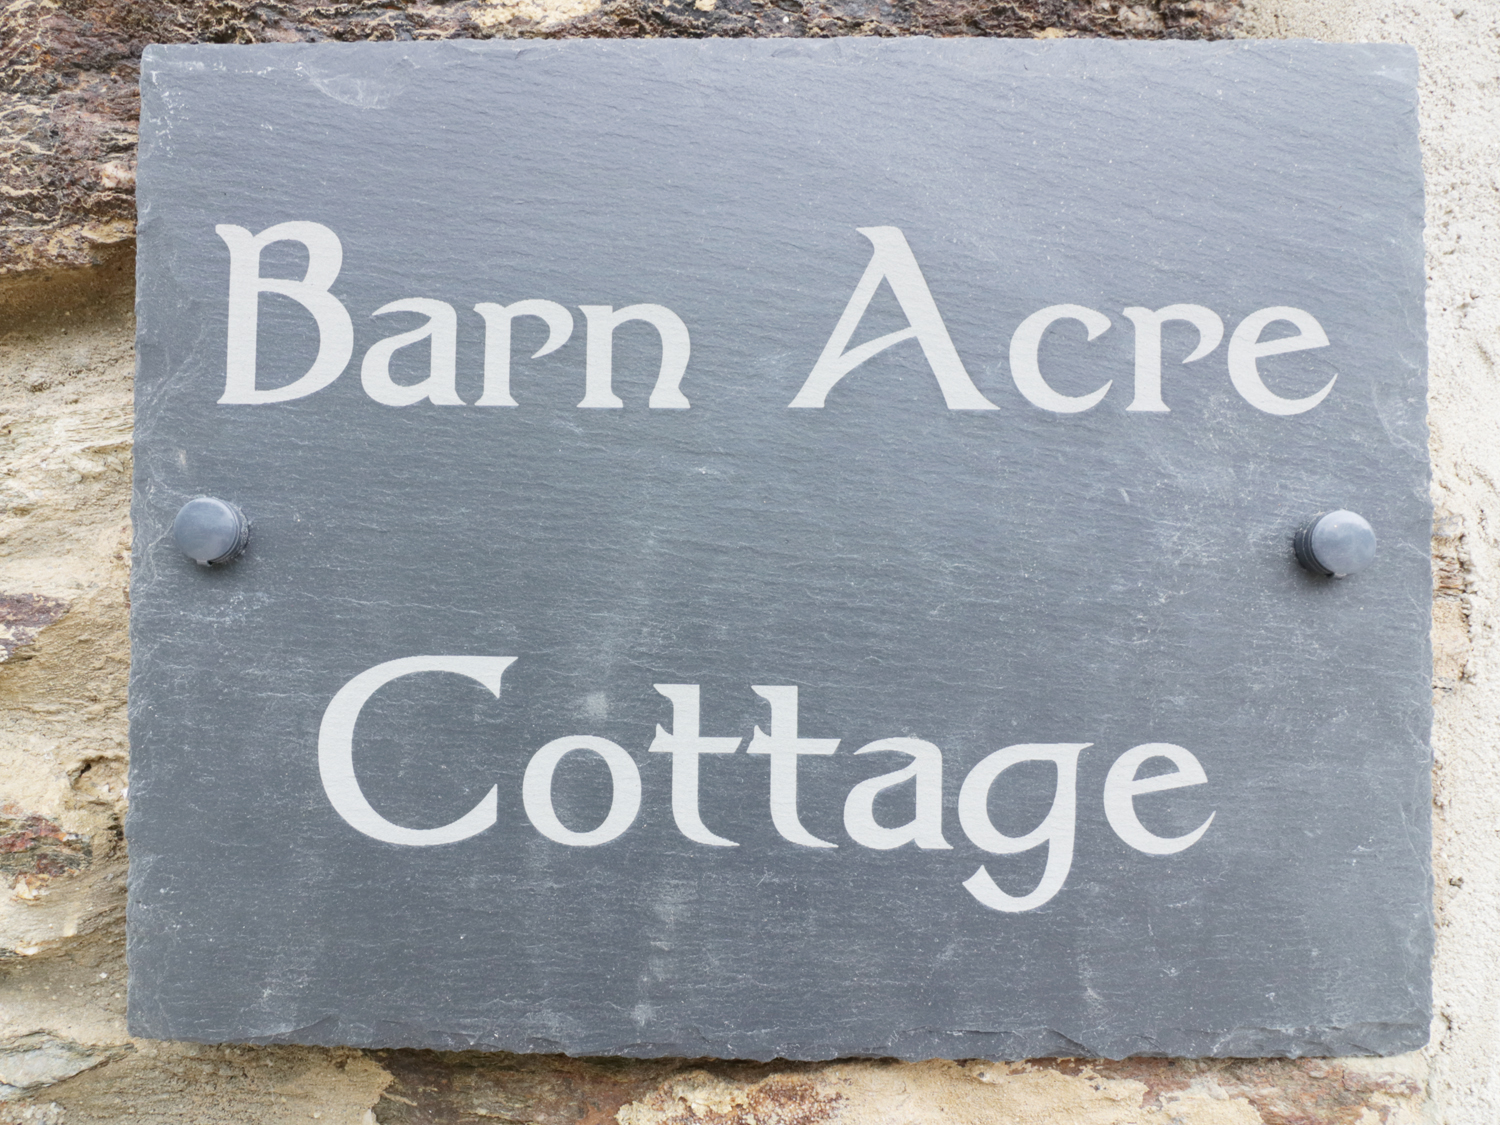 Barn Acre Cottage